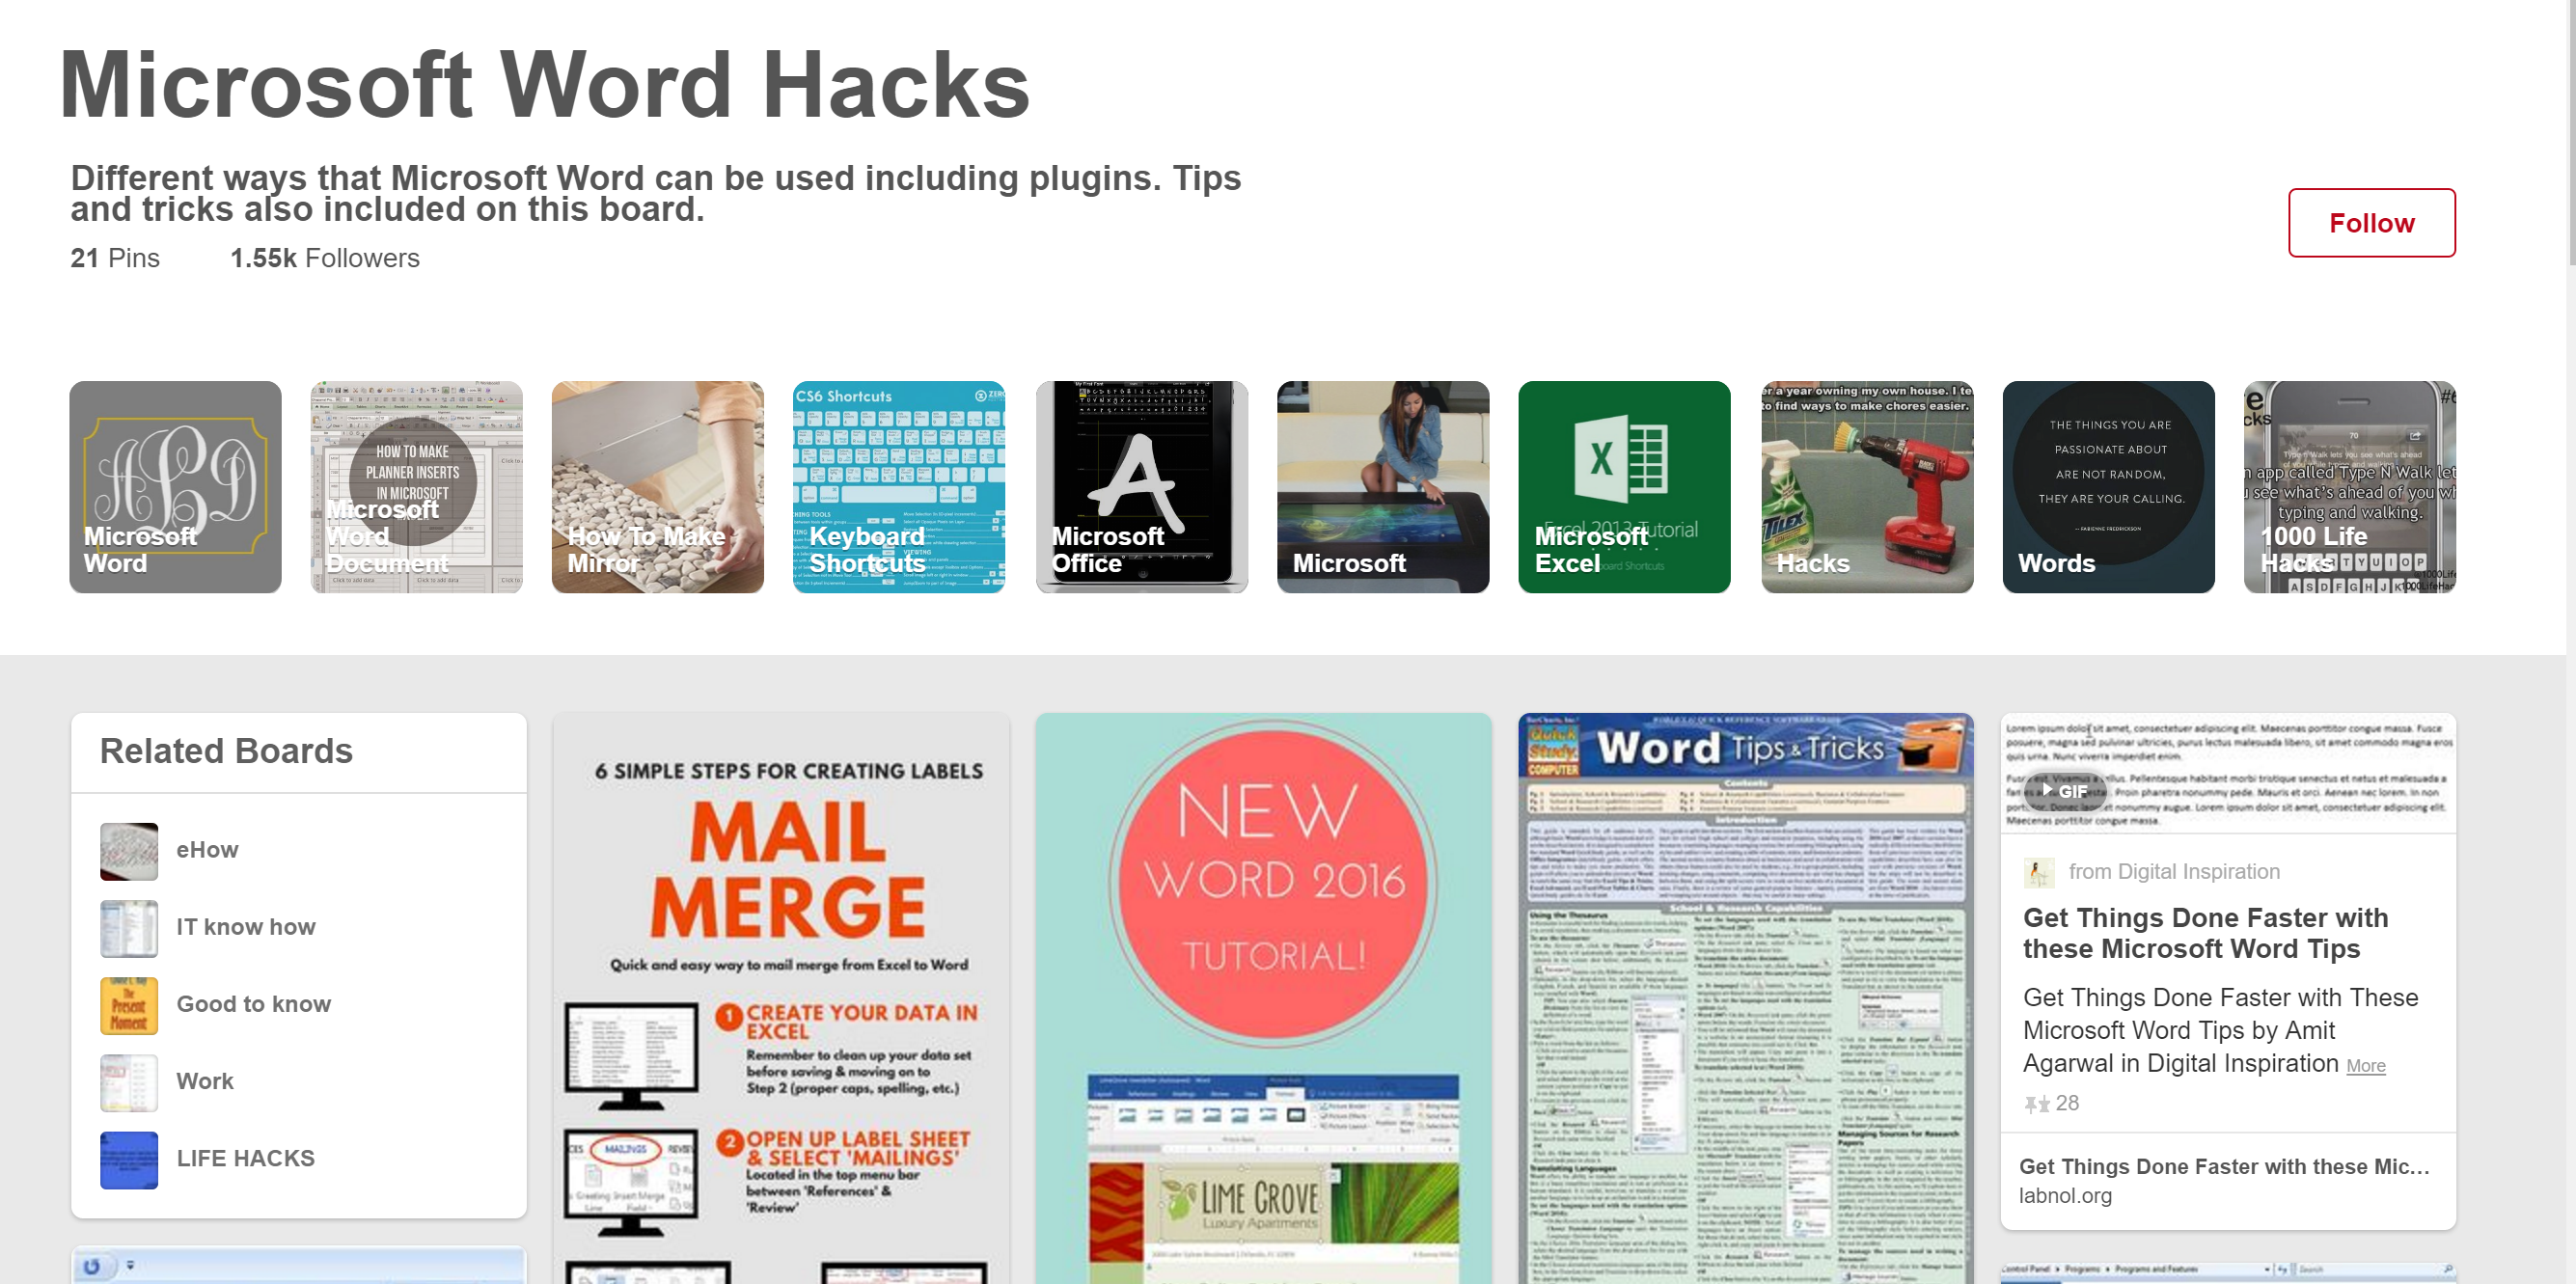 Microsoft Word hacks